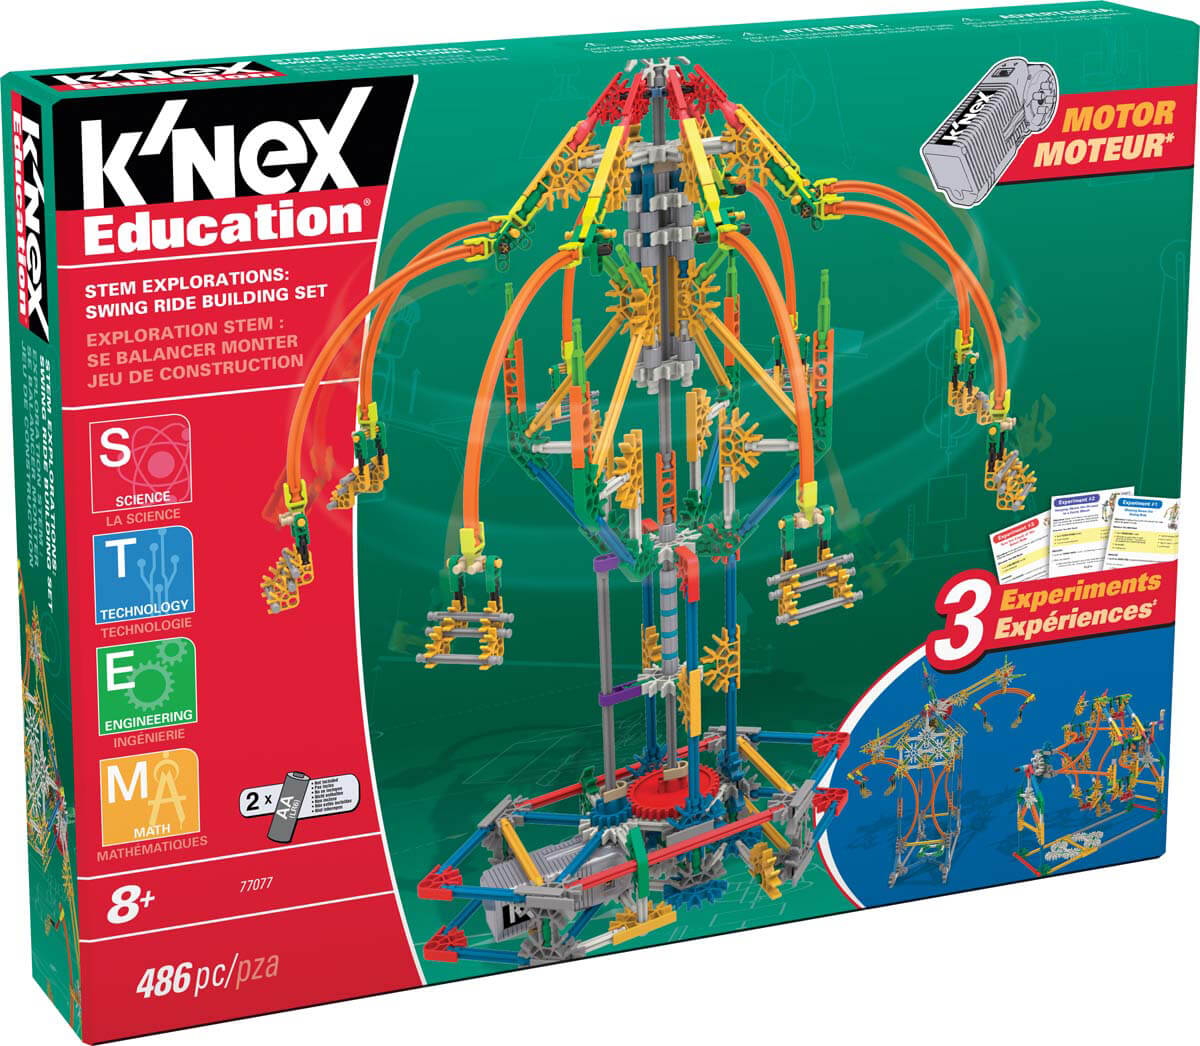 Hatfield's K'NEX Adds New STEM Based Sets to Its Product Line